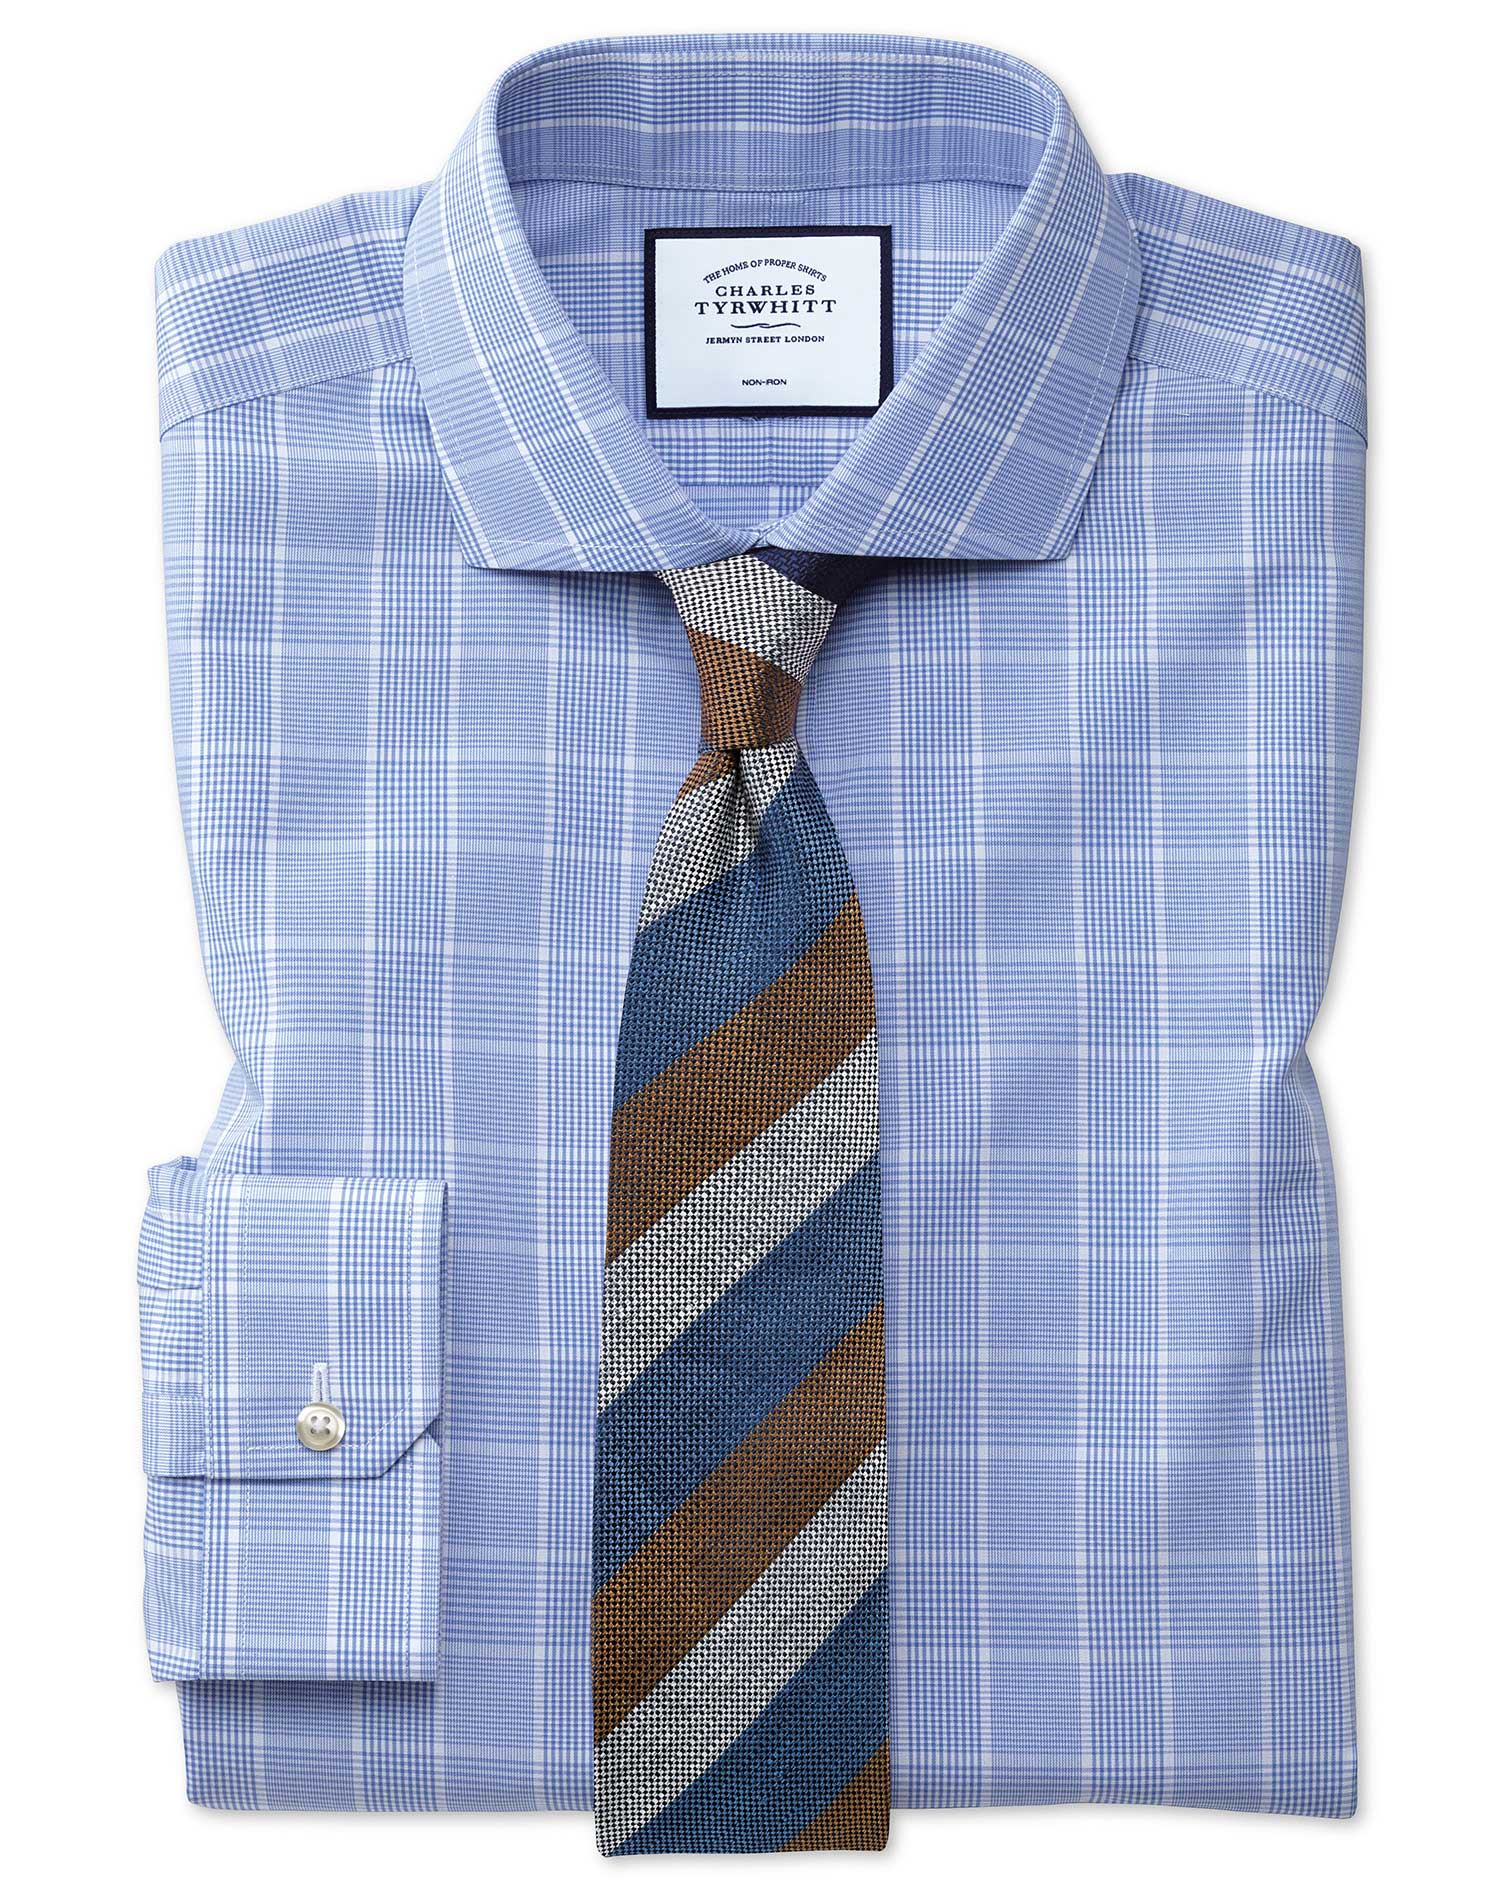 Super Slim Fit Cutaway Non-Iron Prince Of Wales Mid Blue Cotton Formal Shirt Single Cuff Size 15.5/3